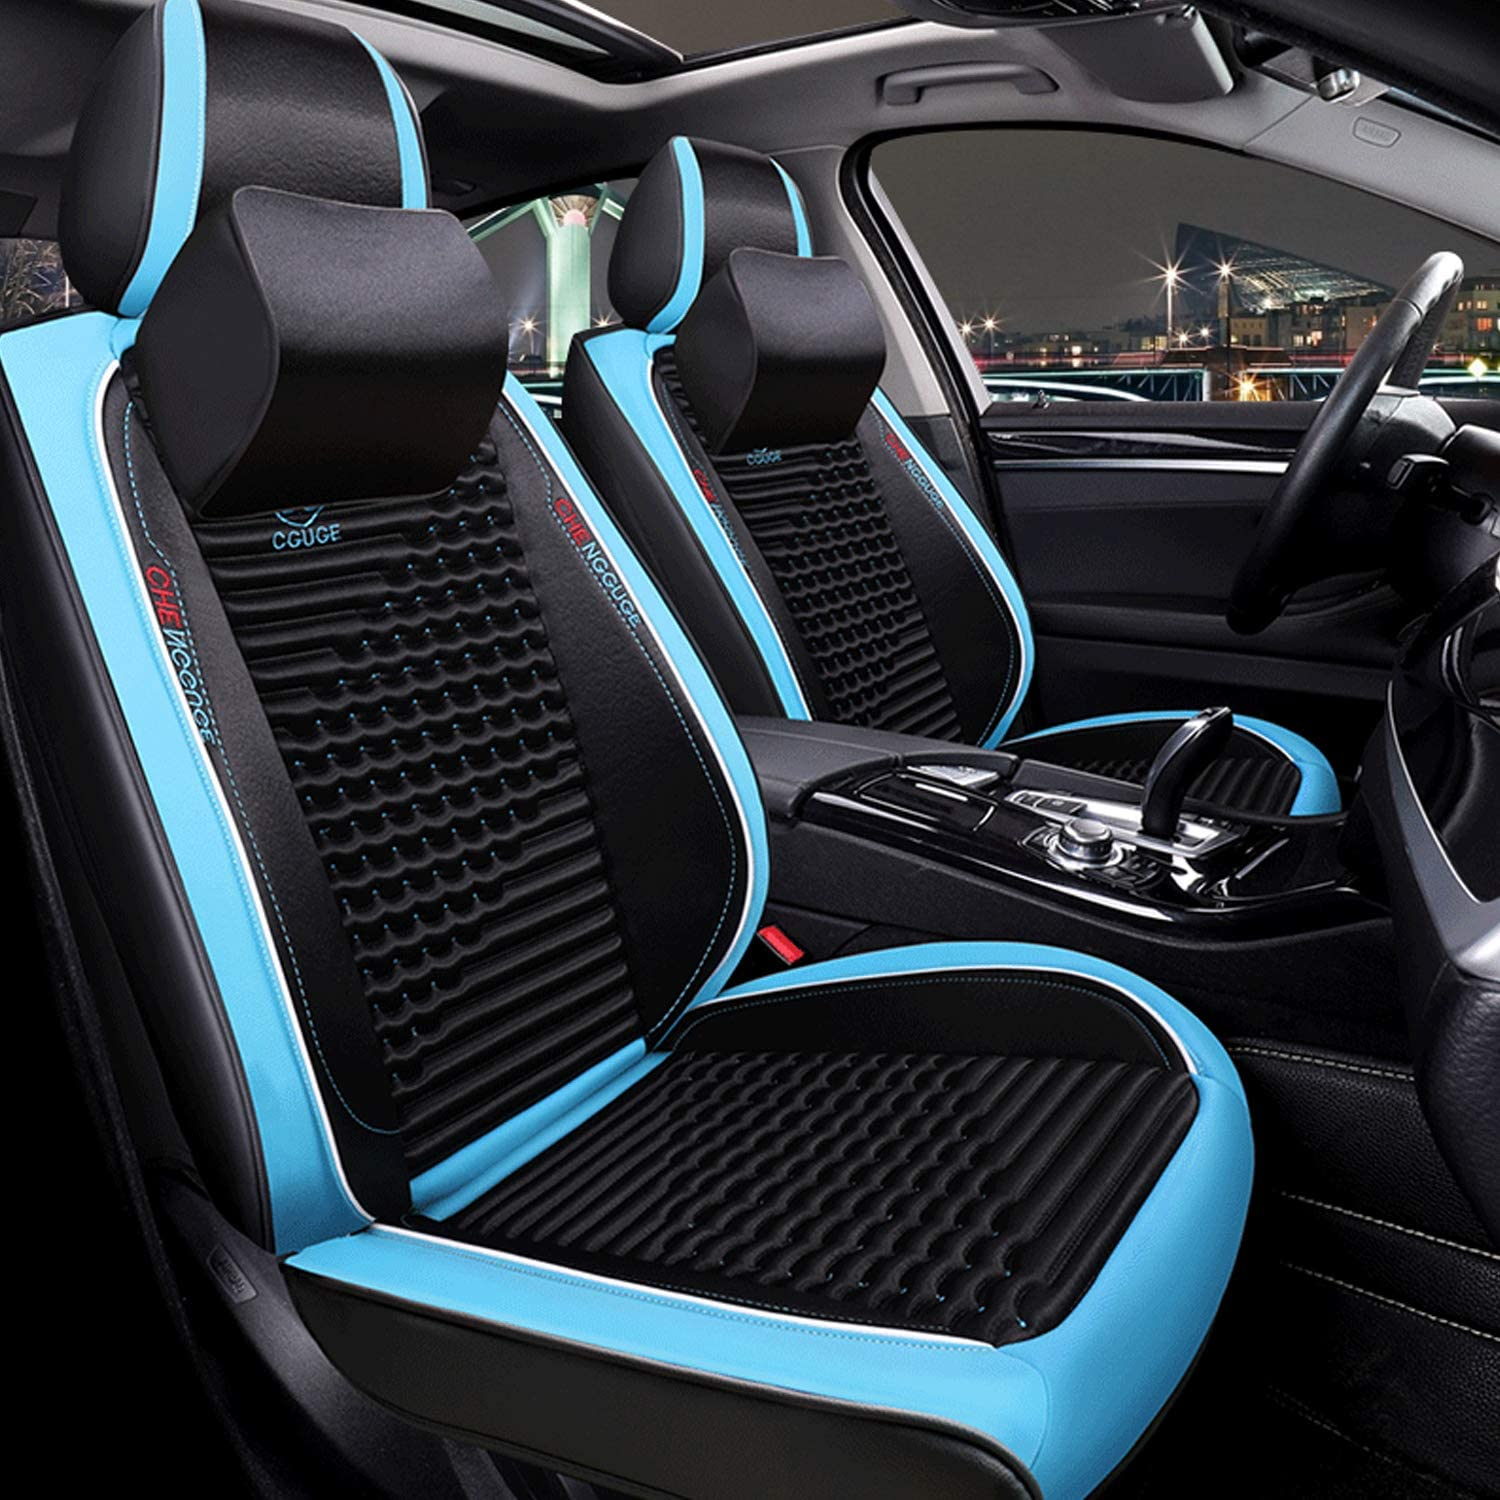 The Full Surrounded Car Seat Protector with Headrest Lumbar Pillow Universal Fit Black-Blue RED-SHYN 2019PU Leather Car Seat Cover